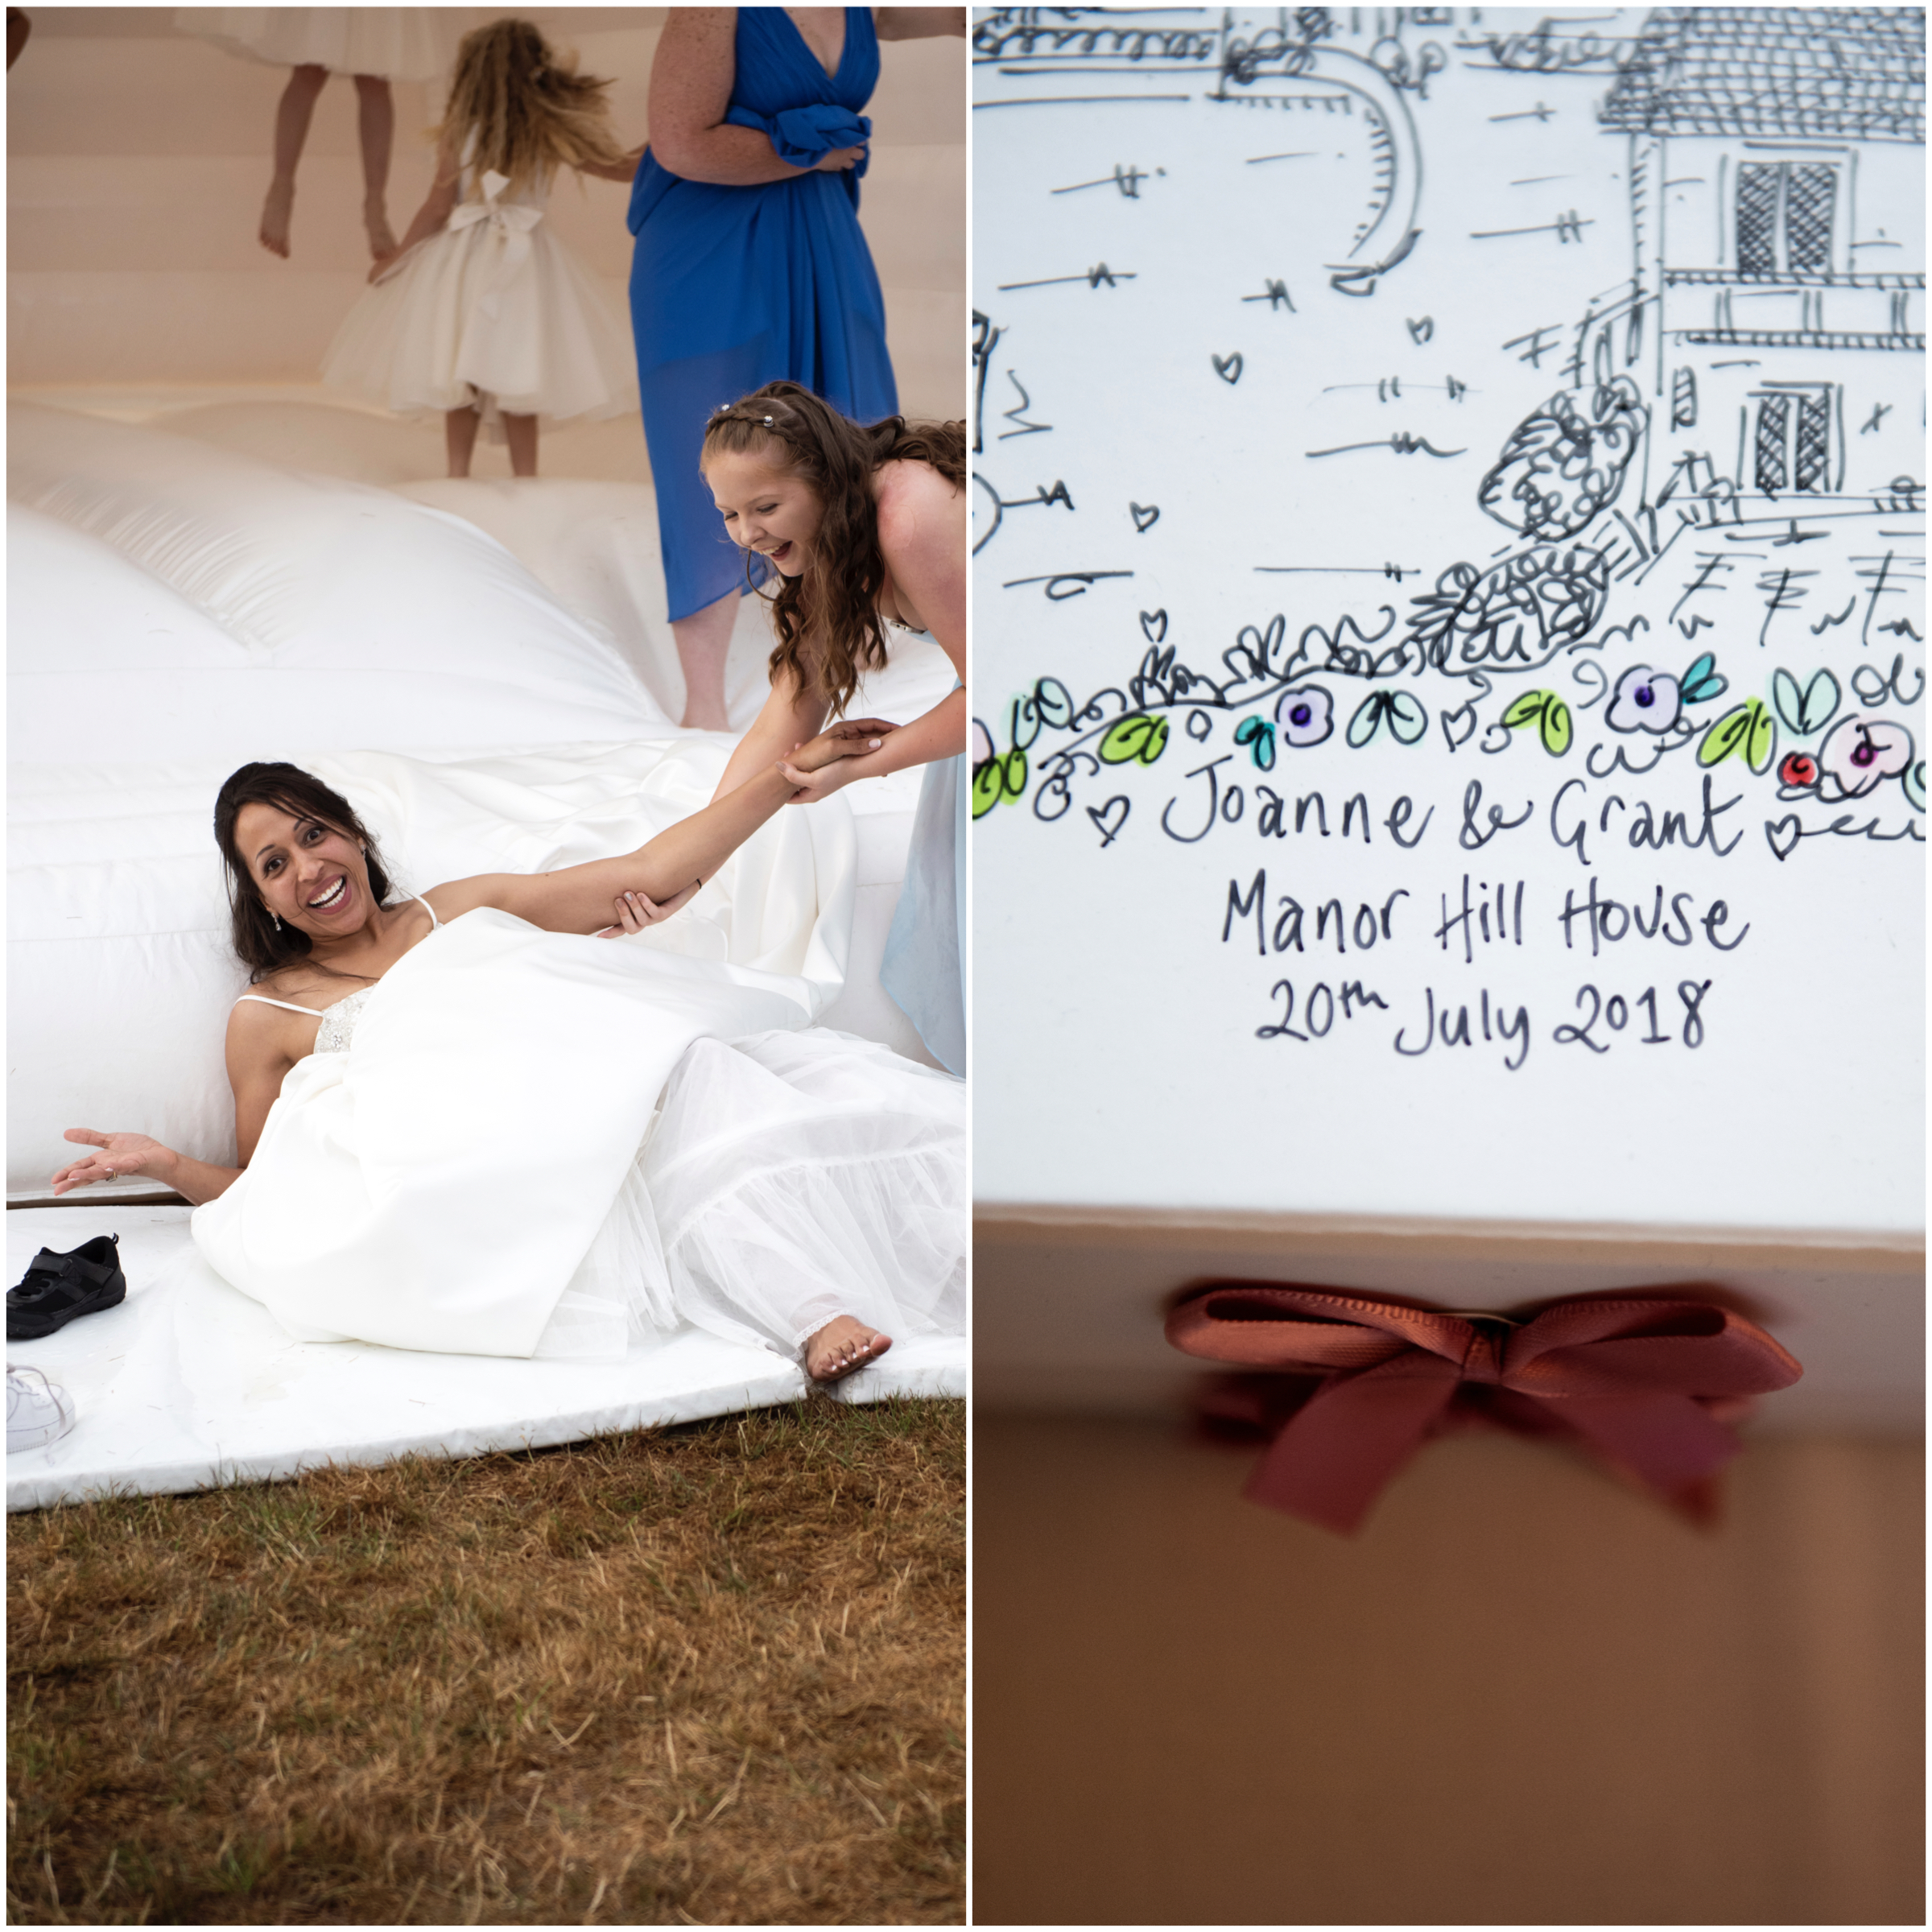 manor hill house wedding photographer